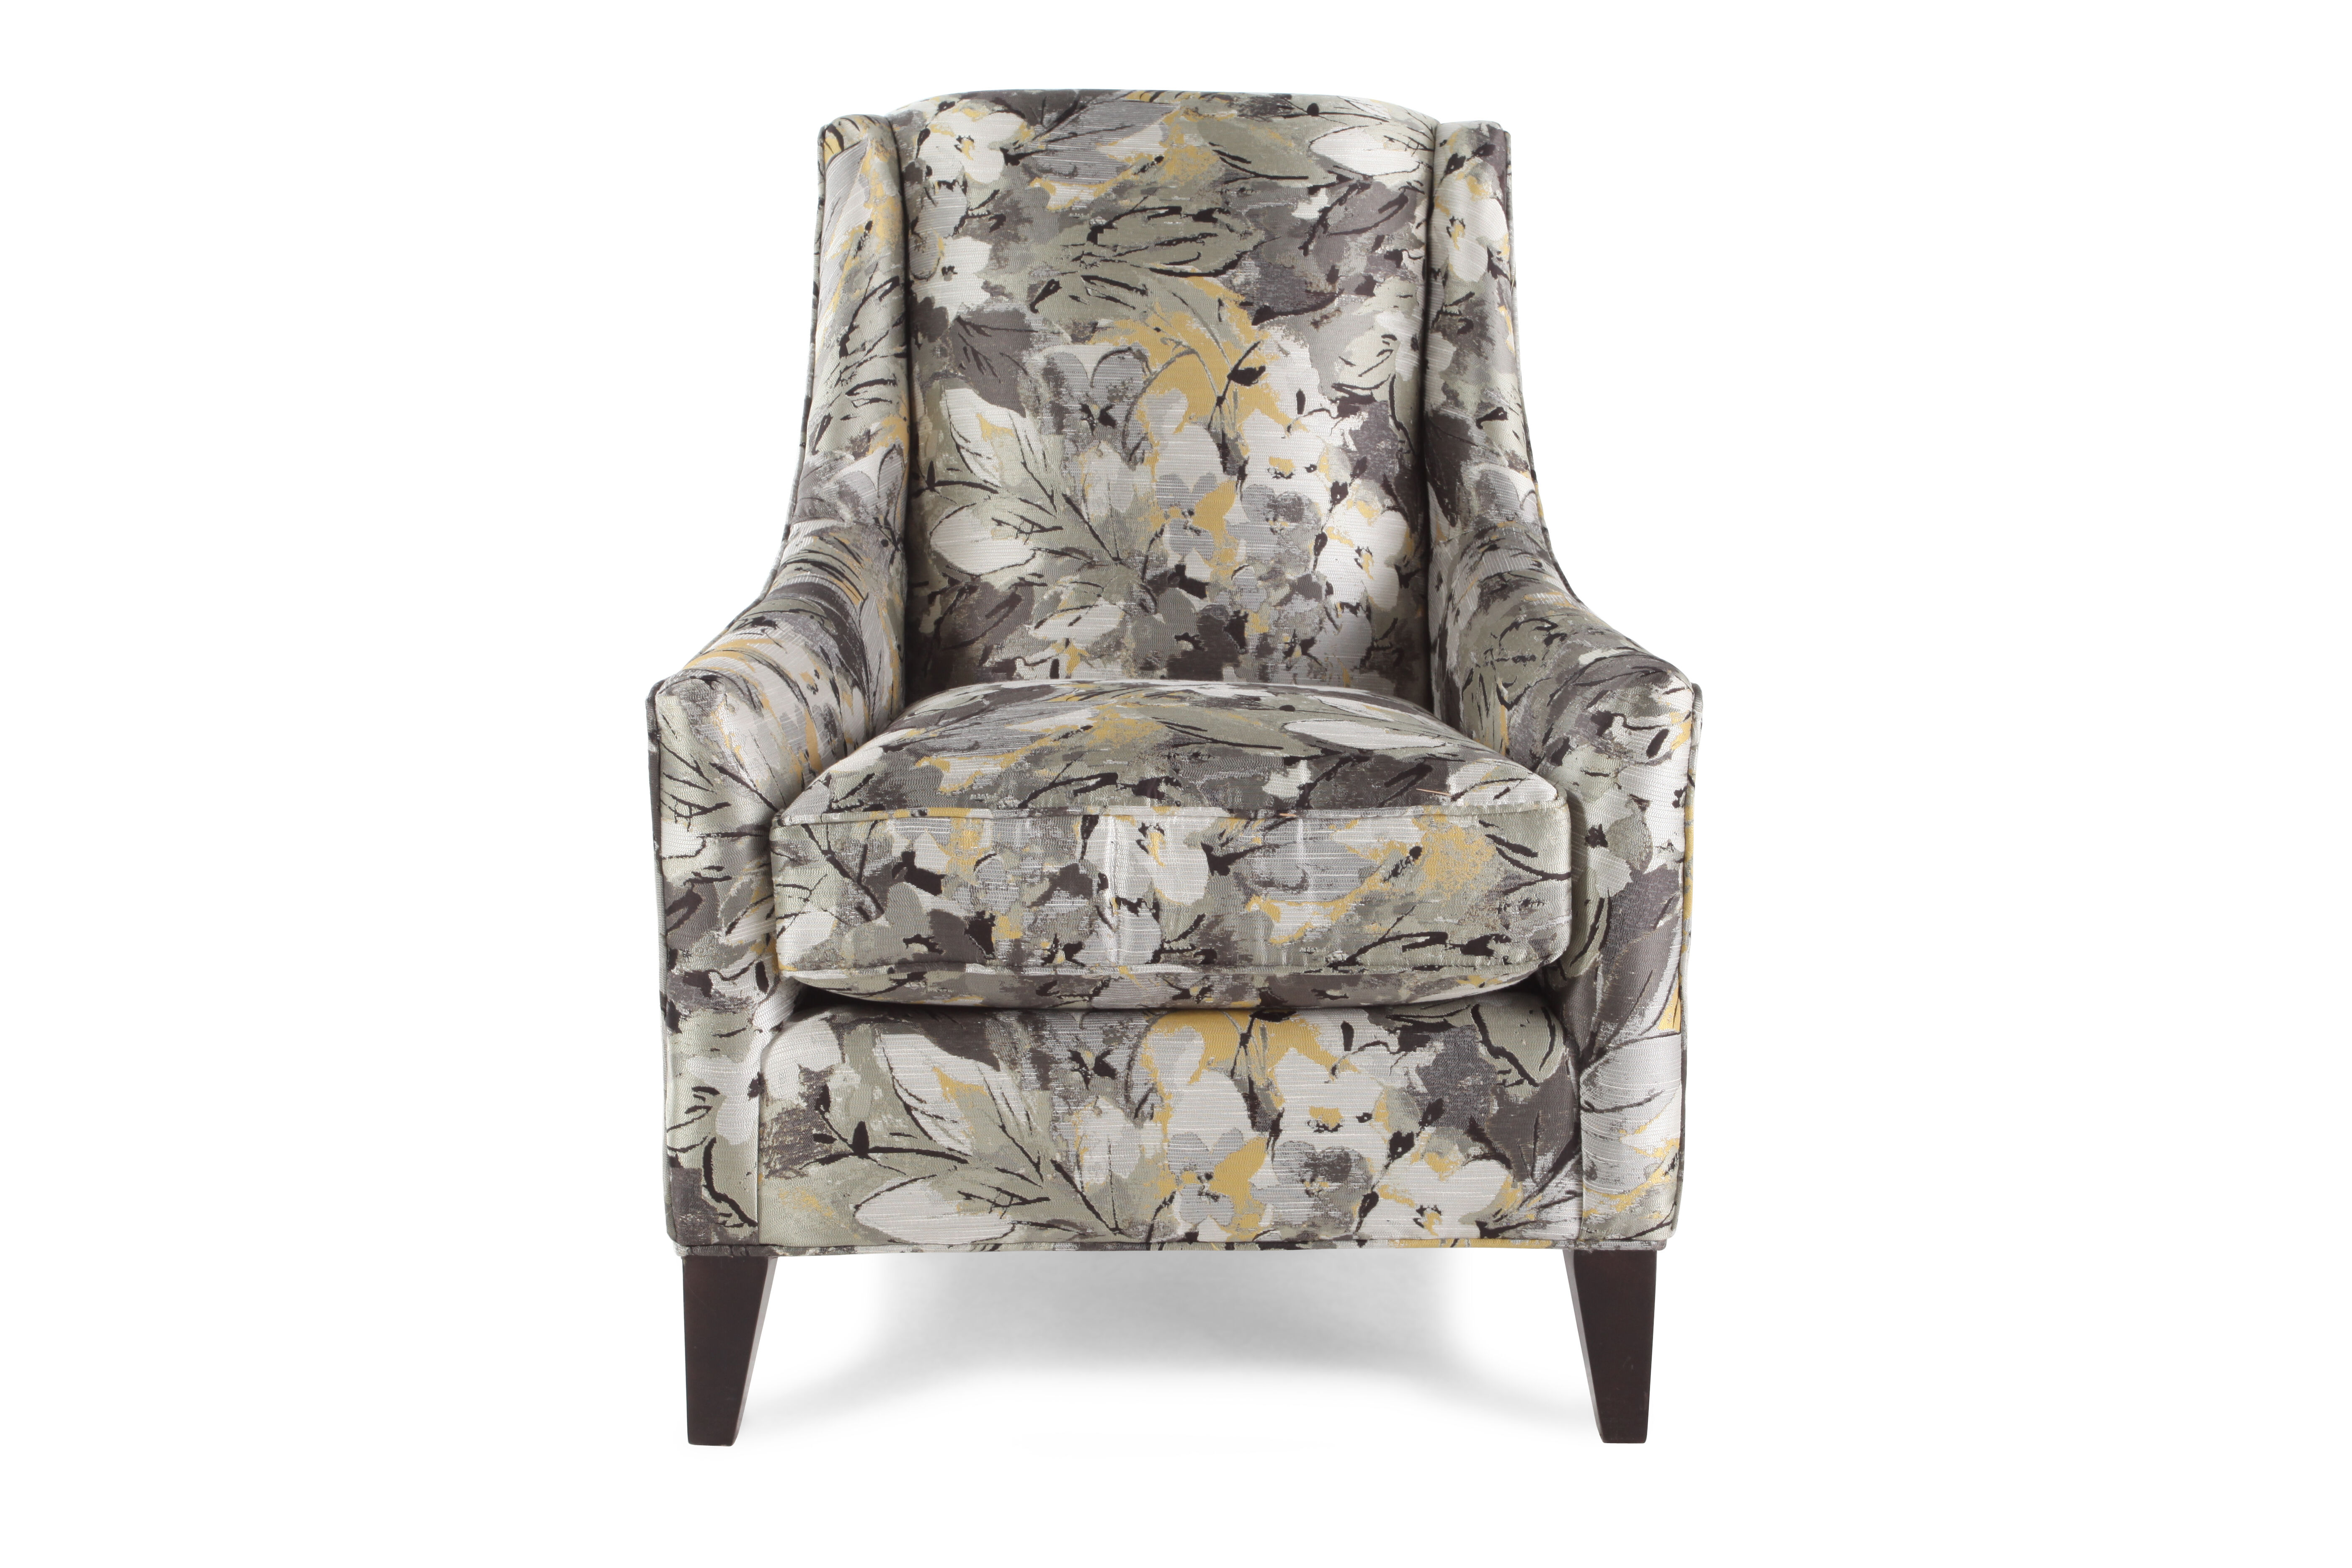 Images Traditional Floral Patterned 29.5u0026quot; Wingback Chair Traditional  Floral Patterned 29.5u0026quot; Wingback Chair